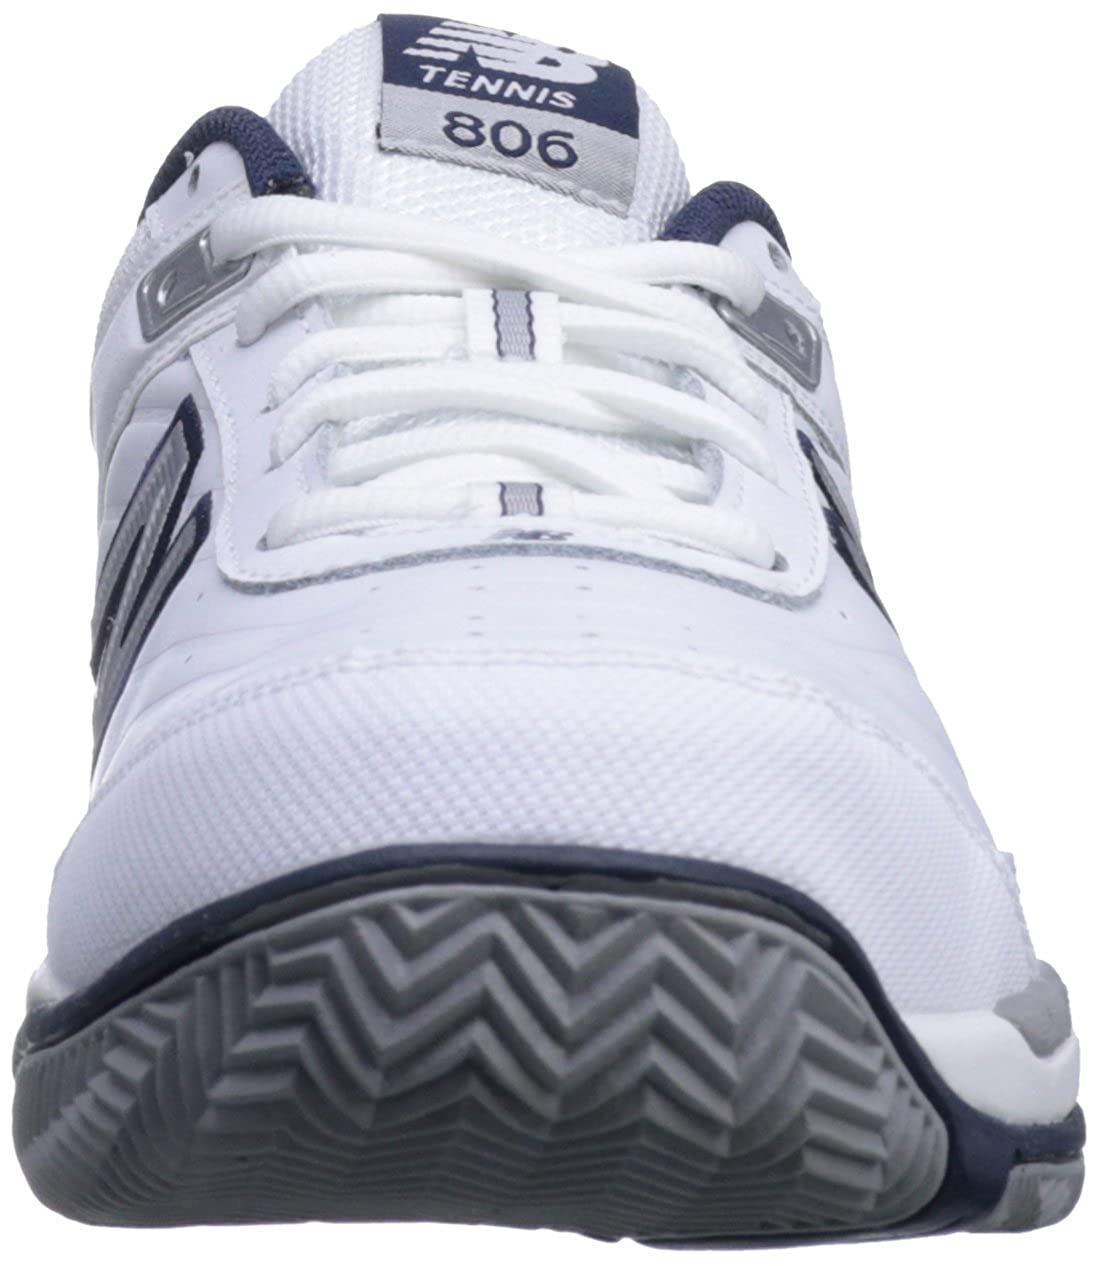 Scarpe da tennis MC806 da uomo, bianche, 16 B US: Amazon.it